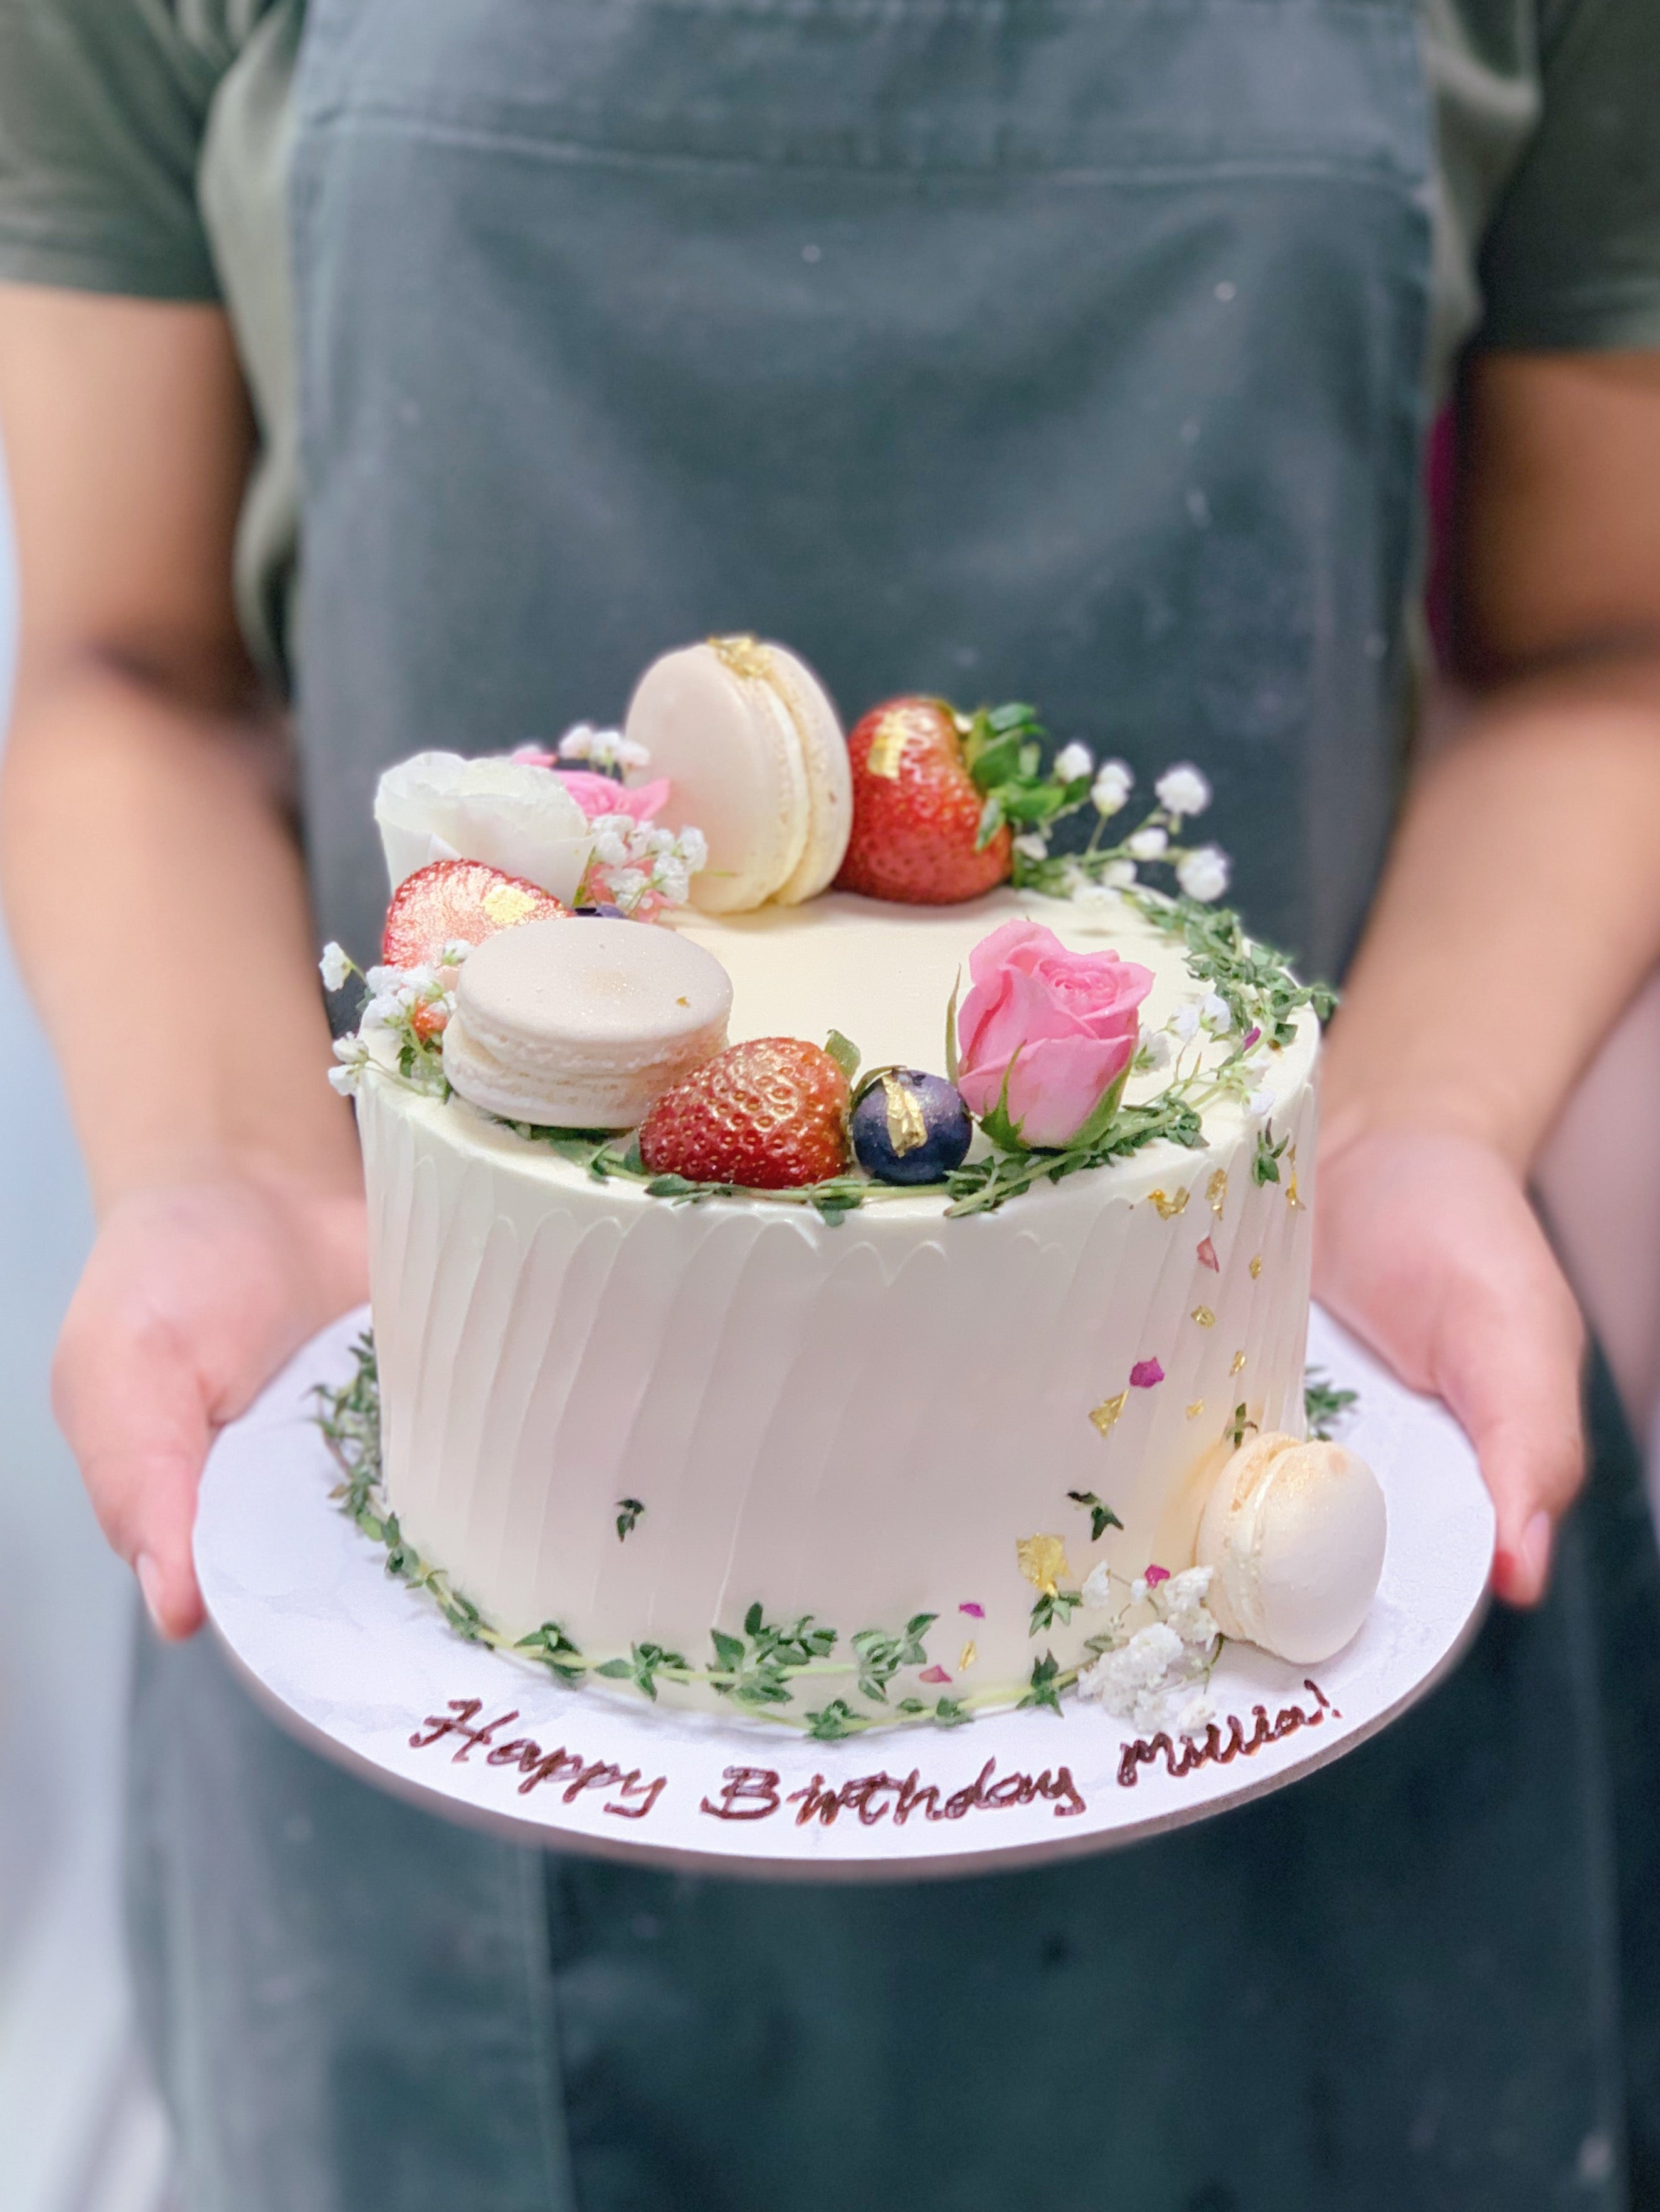 Berries Floral and Macarons Striped Cake